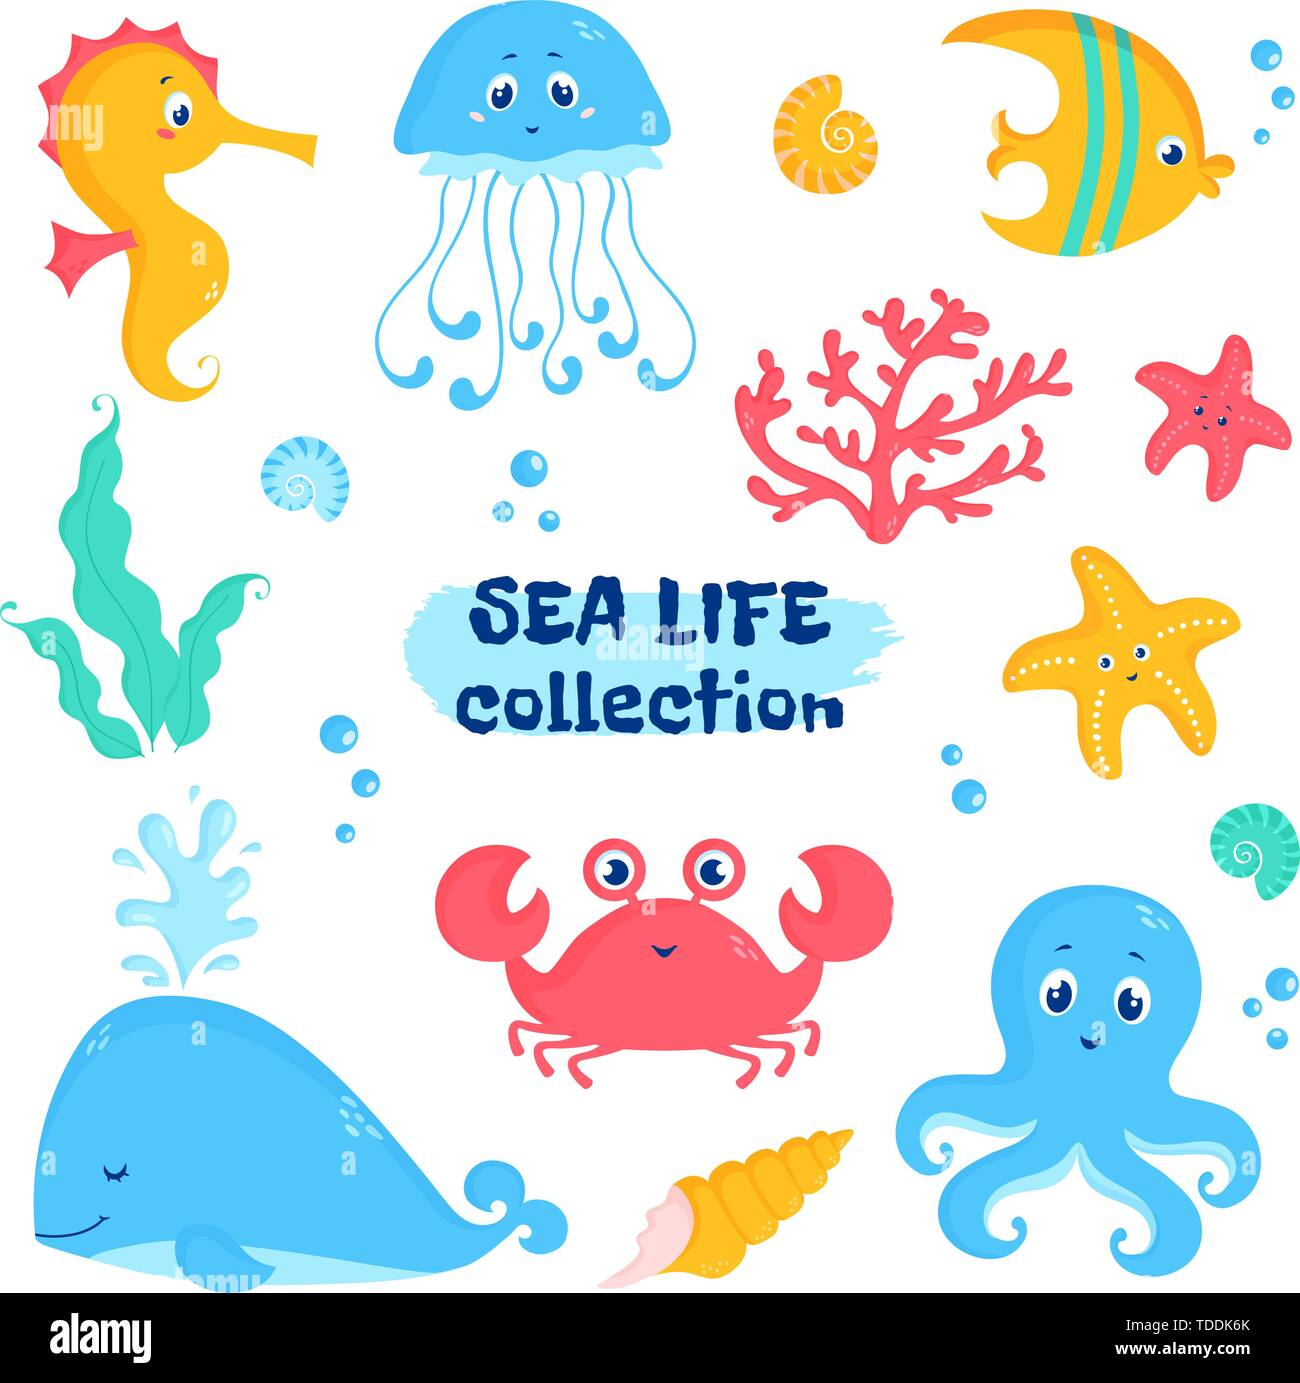 Sea animals and plants elements - whale, fish, crab, seahorse, octopus, starfish, jellyfish, shells, coral, seaweeds. Vector set of cute illustrations - Stock Image